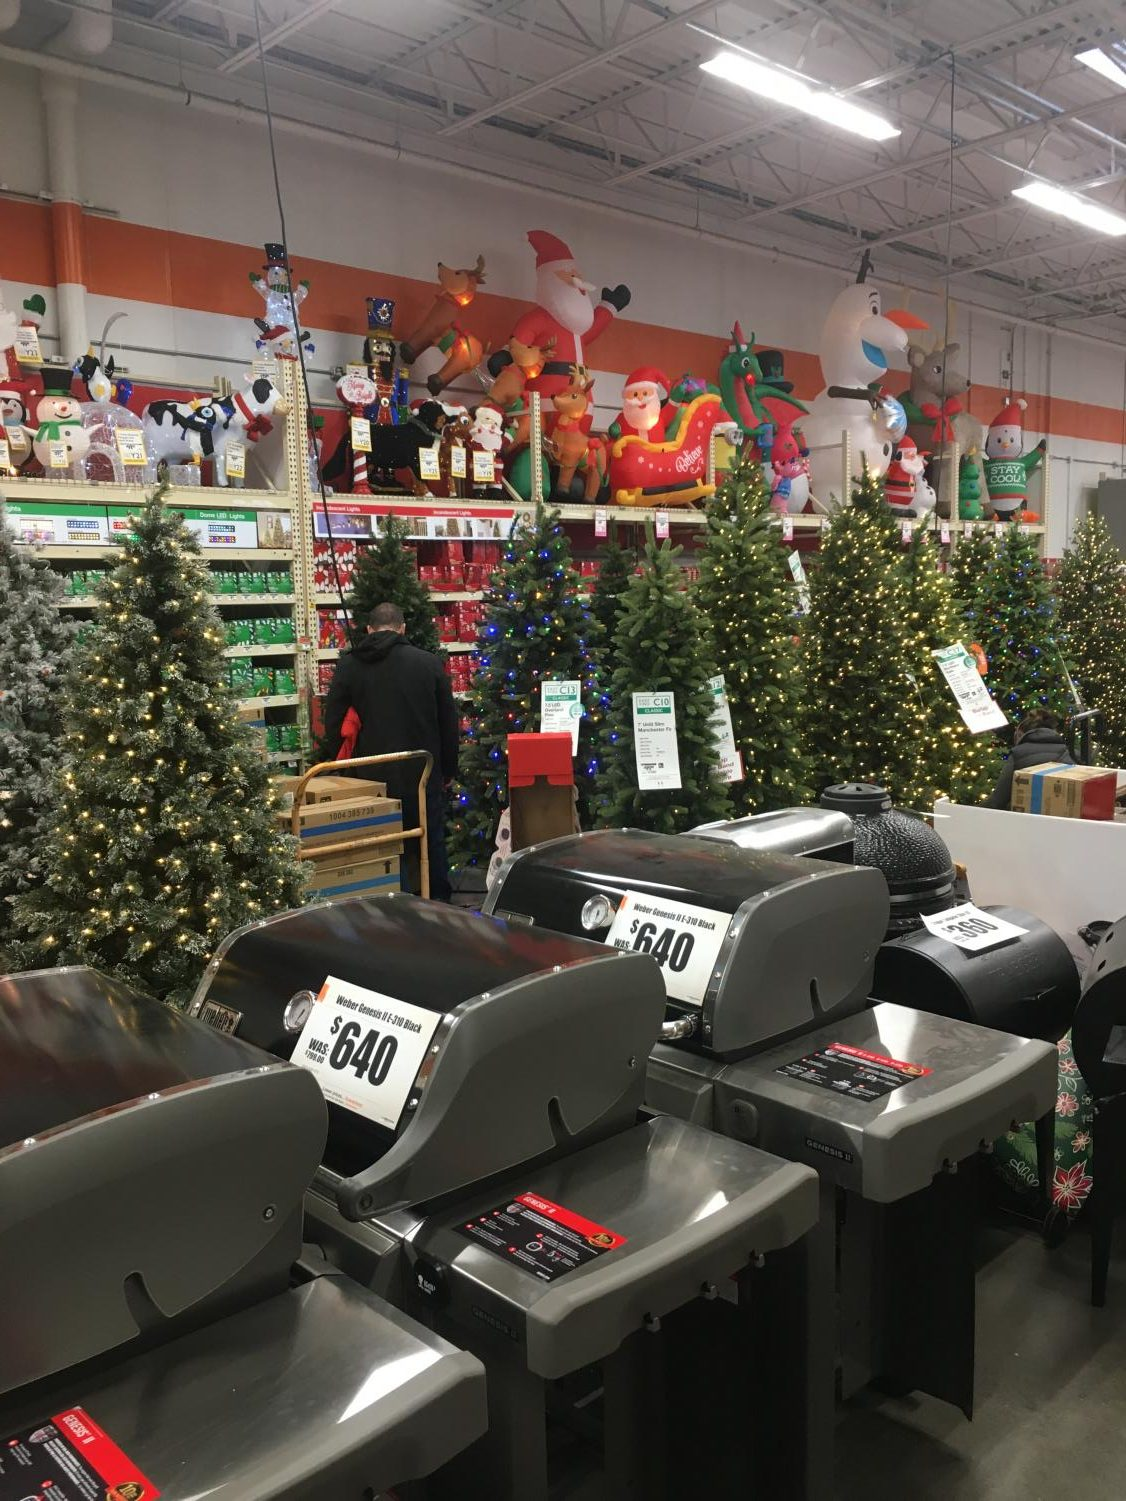 Shoppers look at the Black Friday deals and Christmas decorations at the Middle Road Home Depot one week before Thanksgiving.